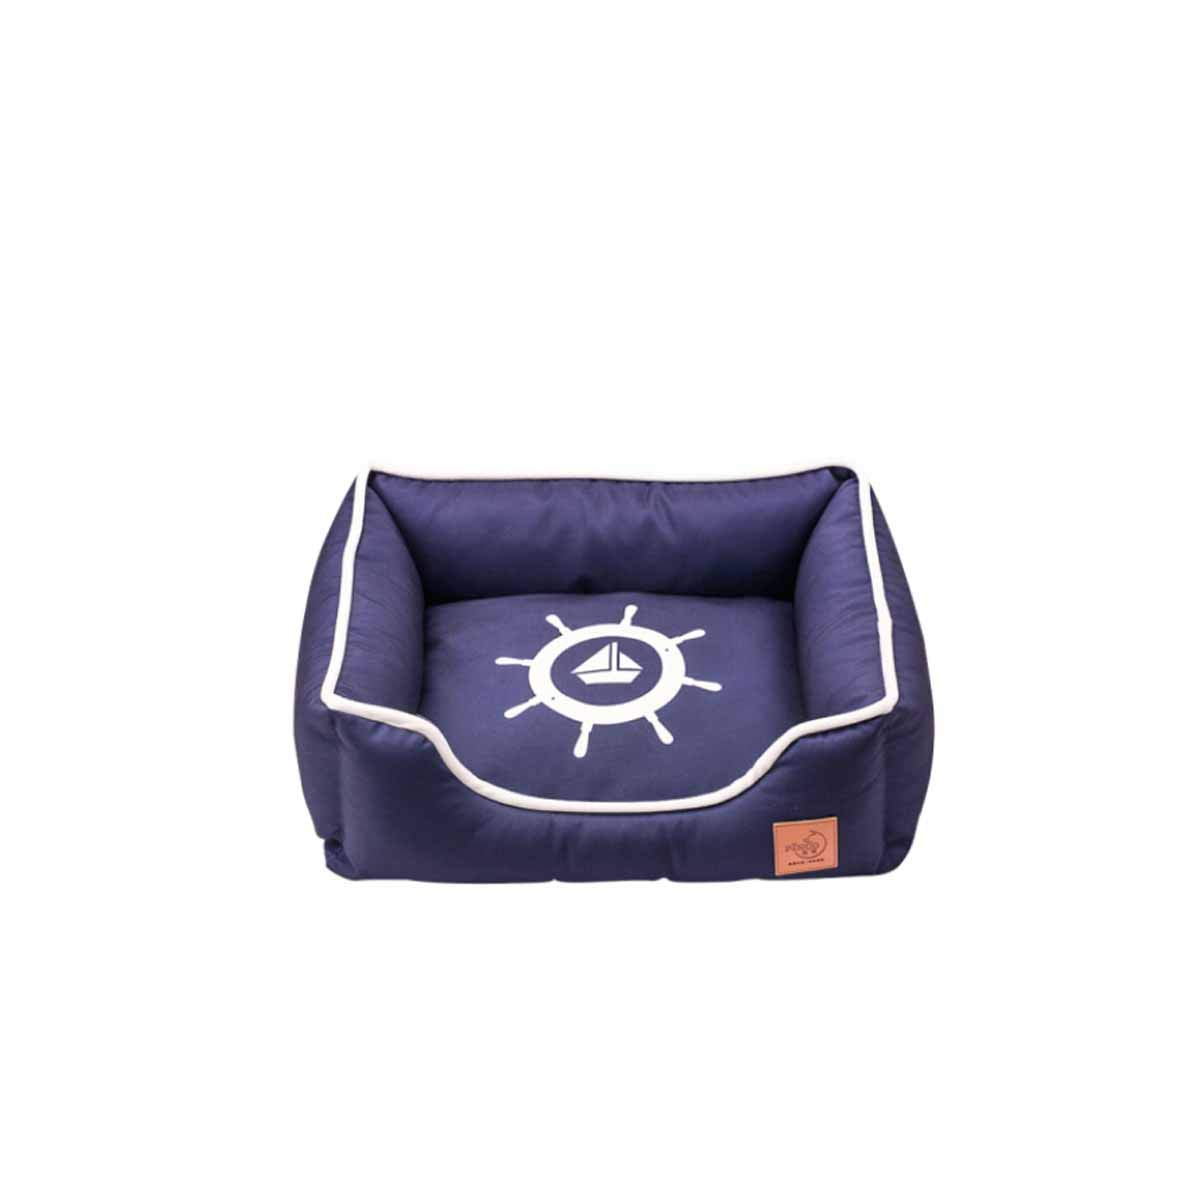 M Muziwenju Pet Kennel, Cat Litter, Removable And Washable, Teddy Bomei, Small Dog Four Seasons Available Nest, Dog Bed, Rudder (Size   M)